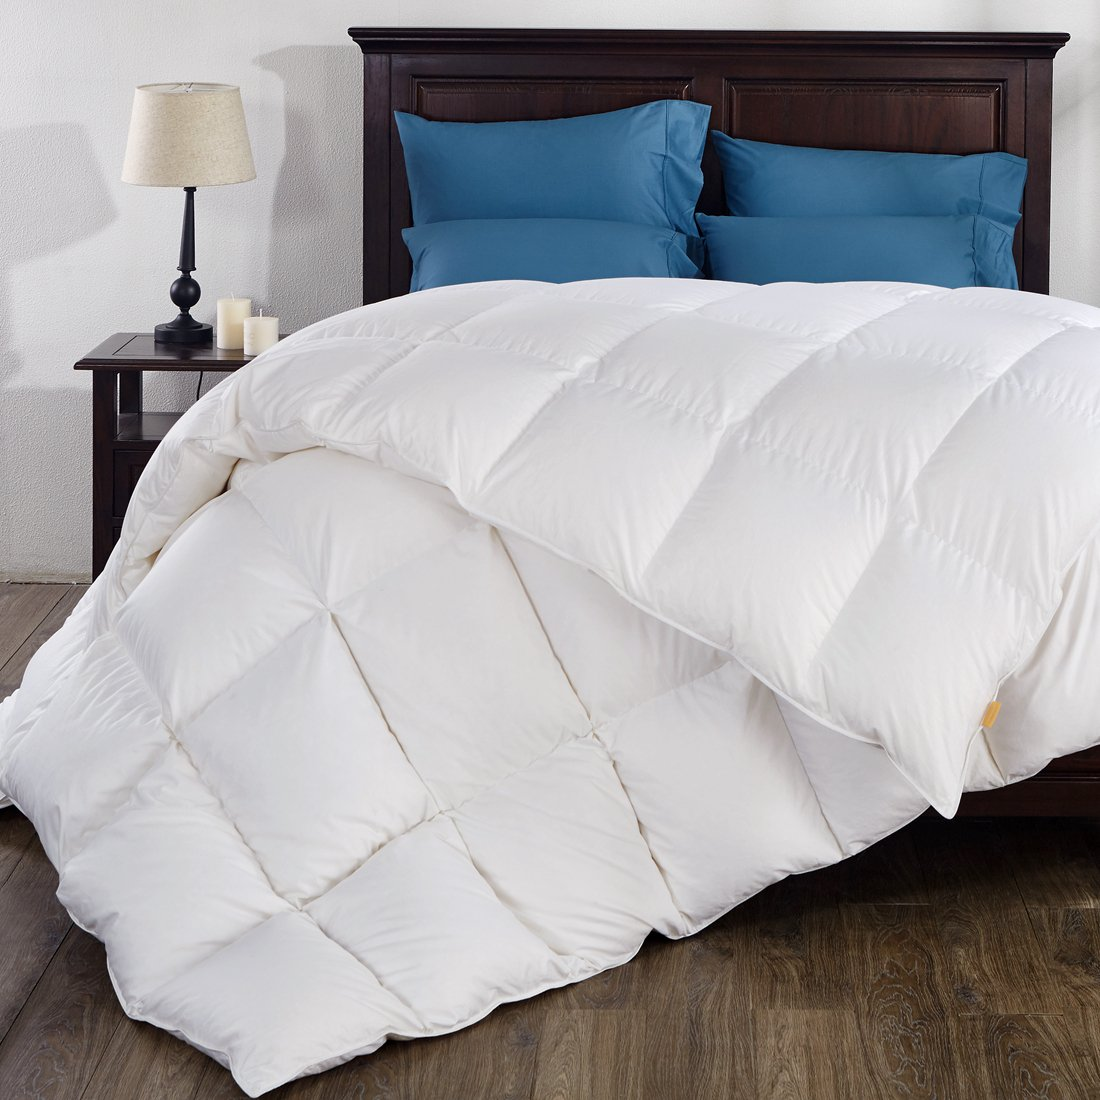 sets and ultra duvet hypoallergenic warmth covers european down medium bedding comforters white clean duvets c premium